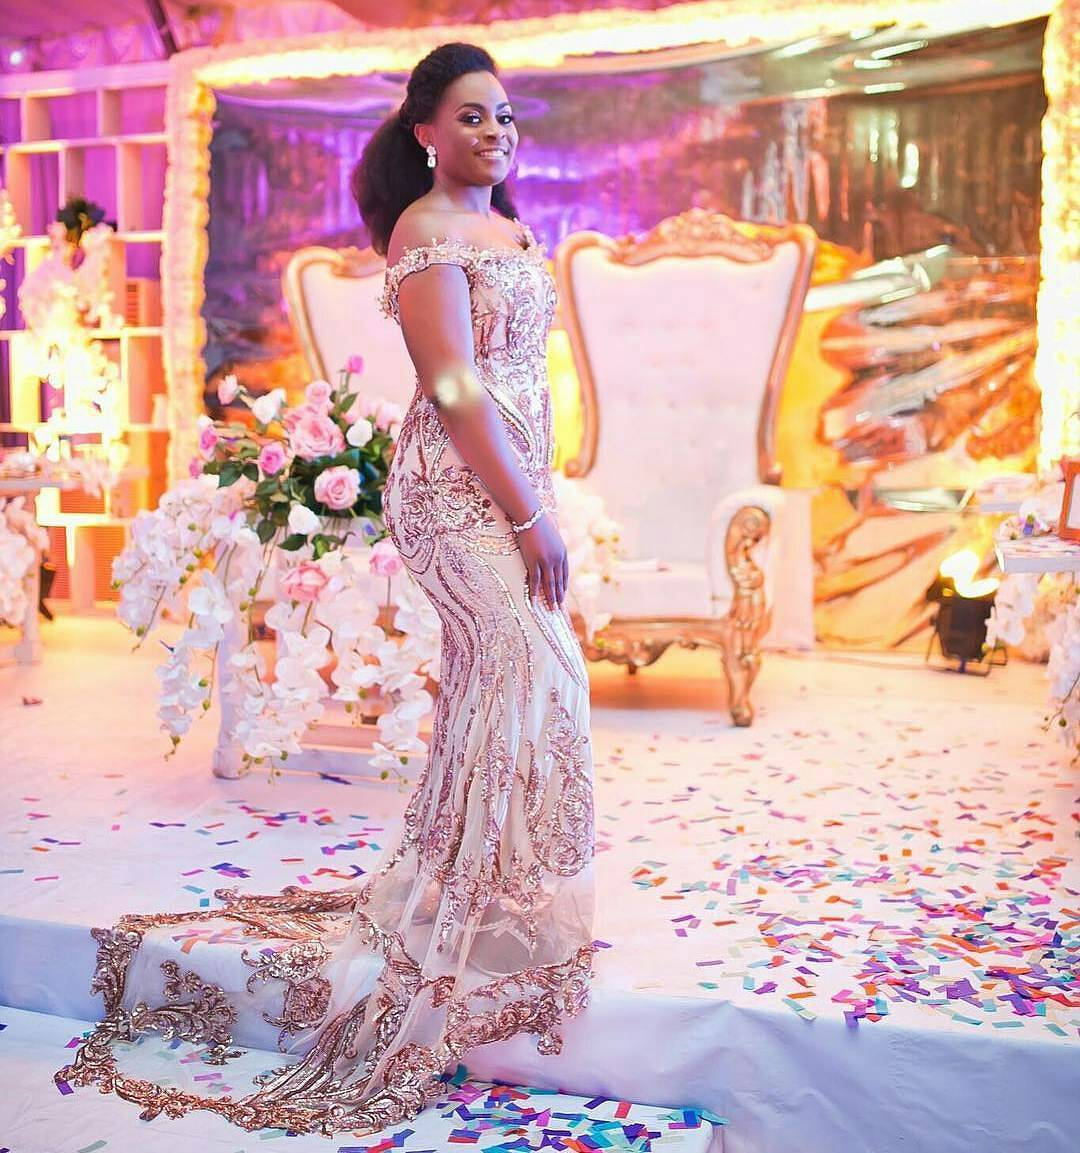 Wedding Reception Styles For Trendy Brides – A Million Styles